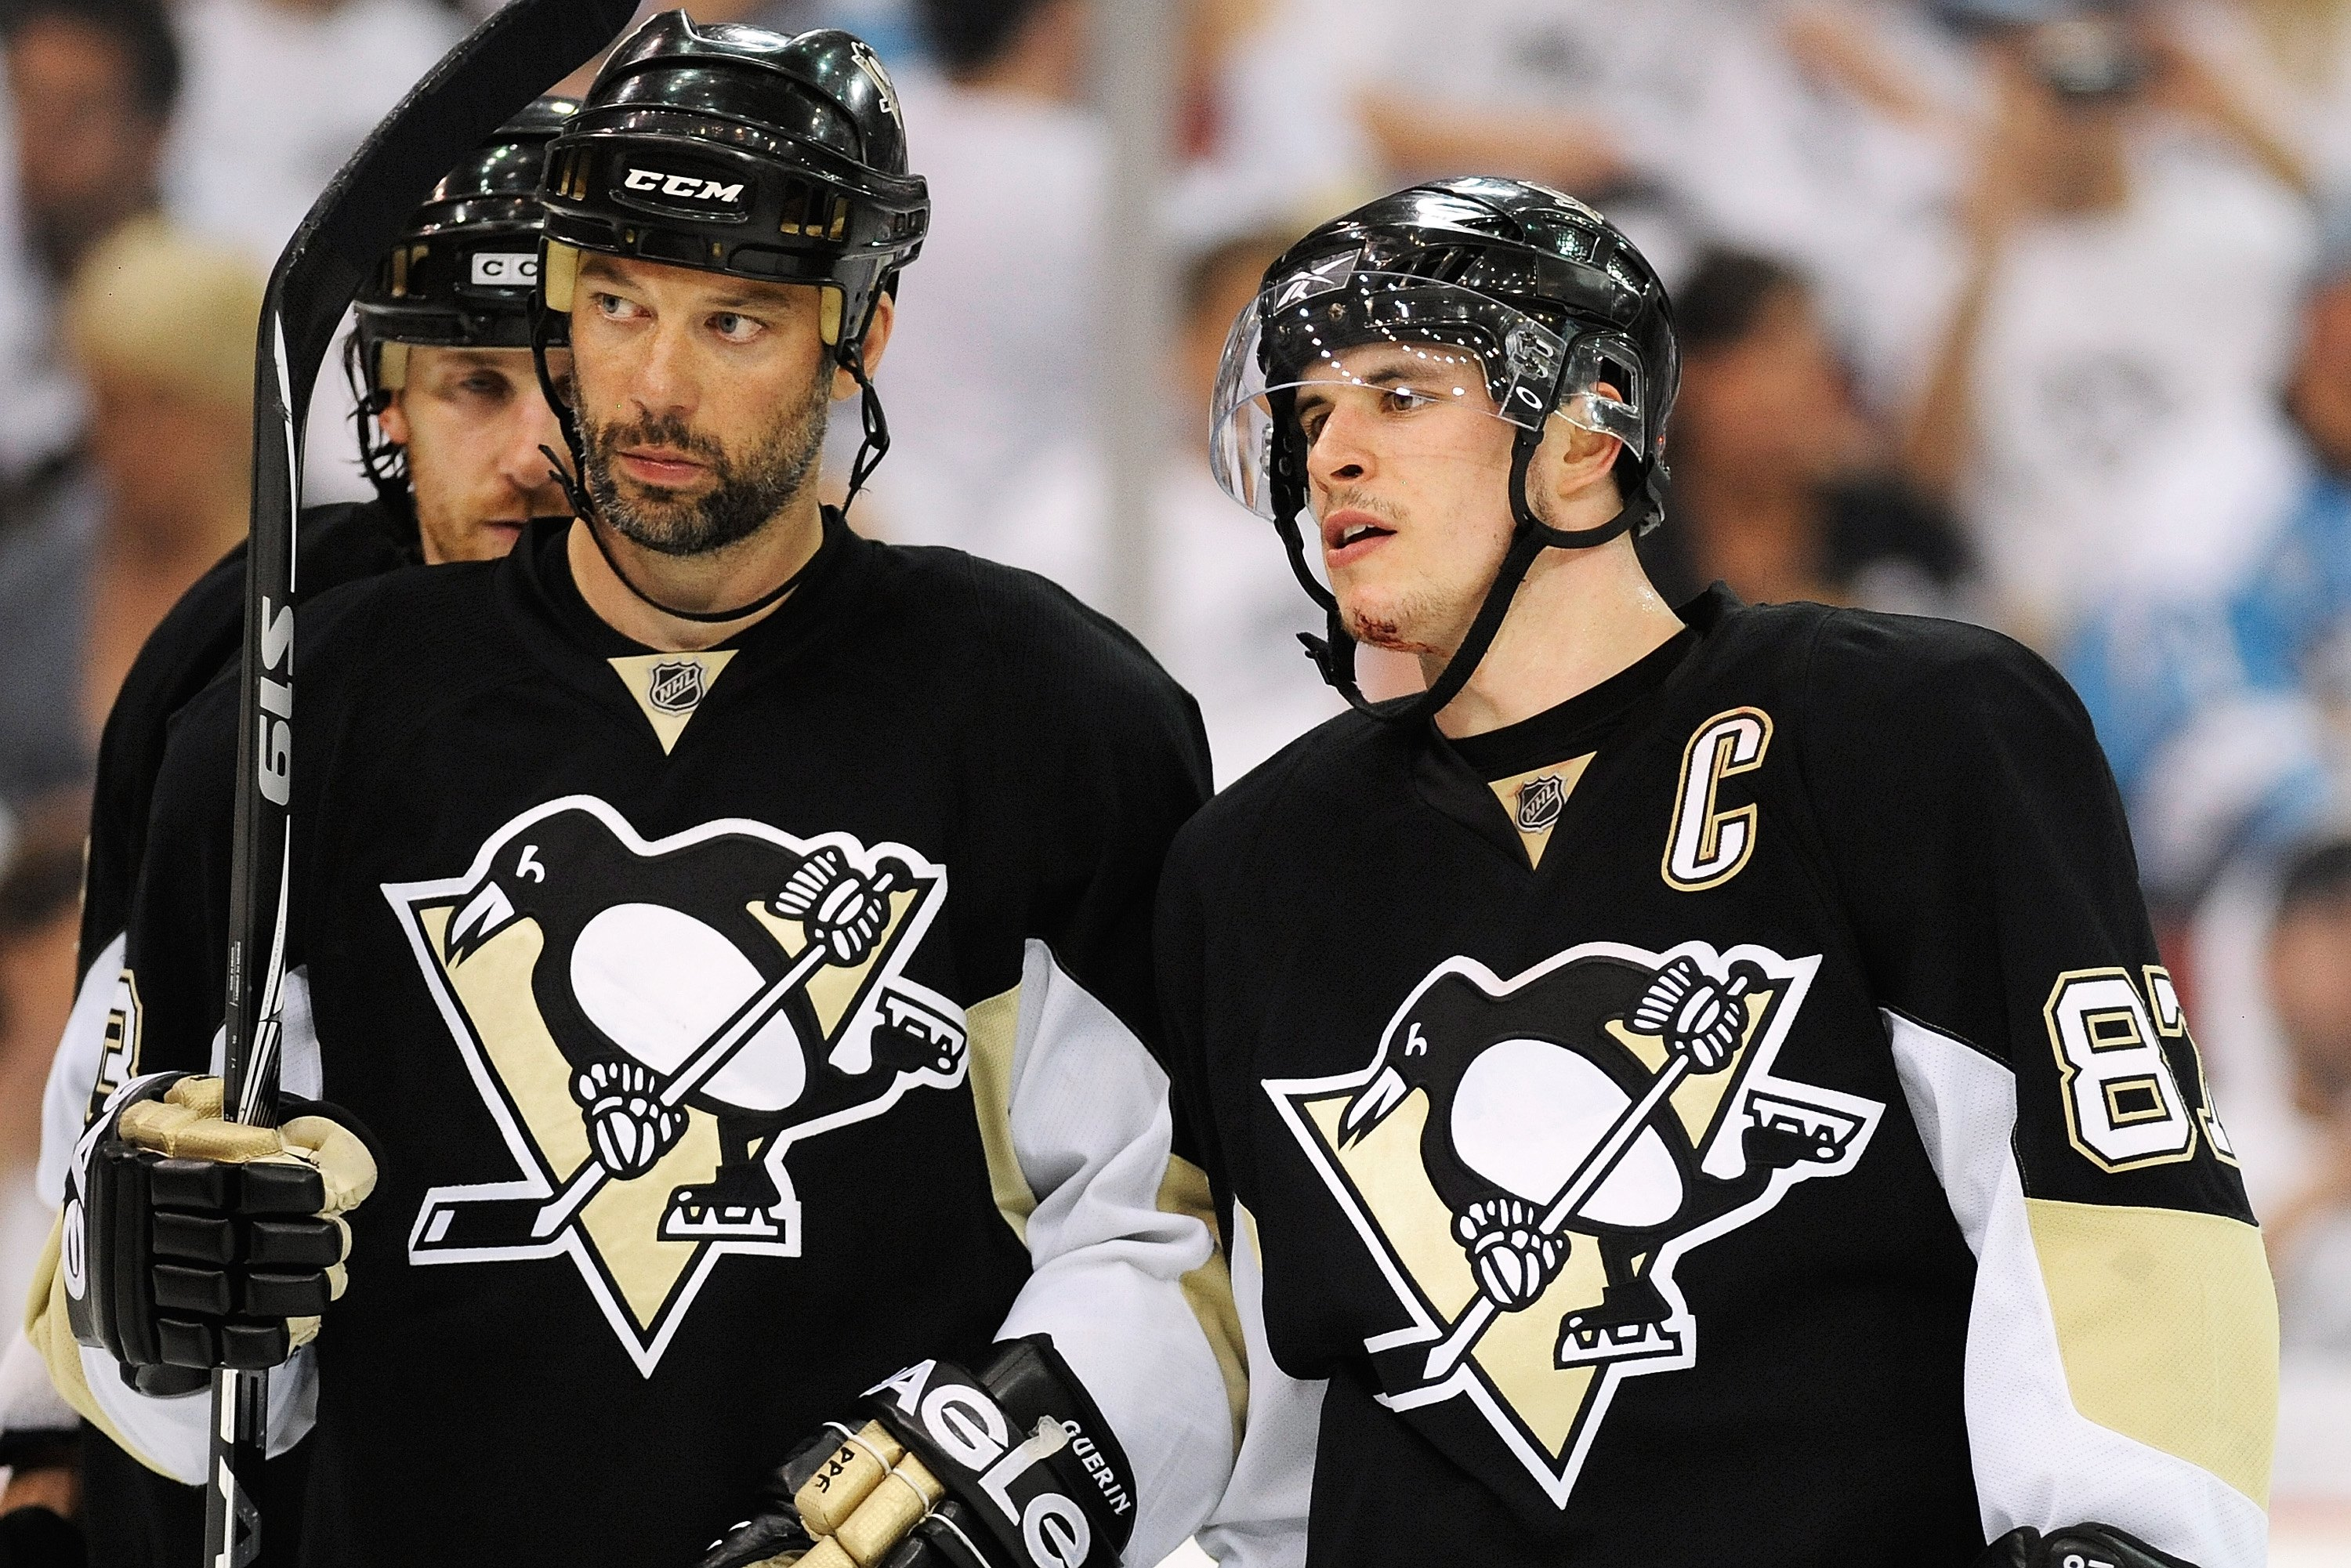 PITTSBURGH - APRIL 30:  Bill Guerin #13 and Sidney Crosby #87 of the Pittsburgh Penguins confer before a face off against the Montreal Canadiens  in Game One of the Eastern Conference Semifinals during the 2010 NHL Stanley Cup Playoffs on April 30, 2010 a